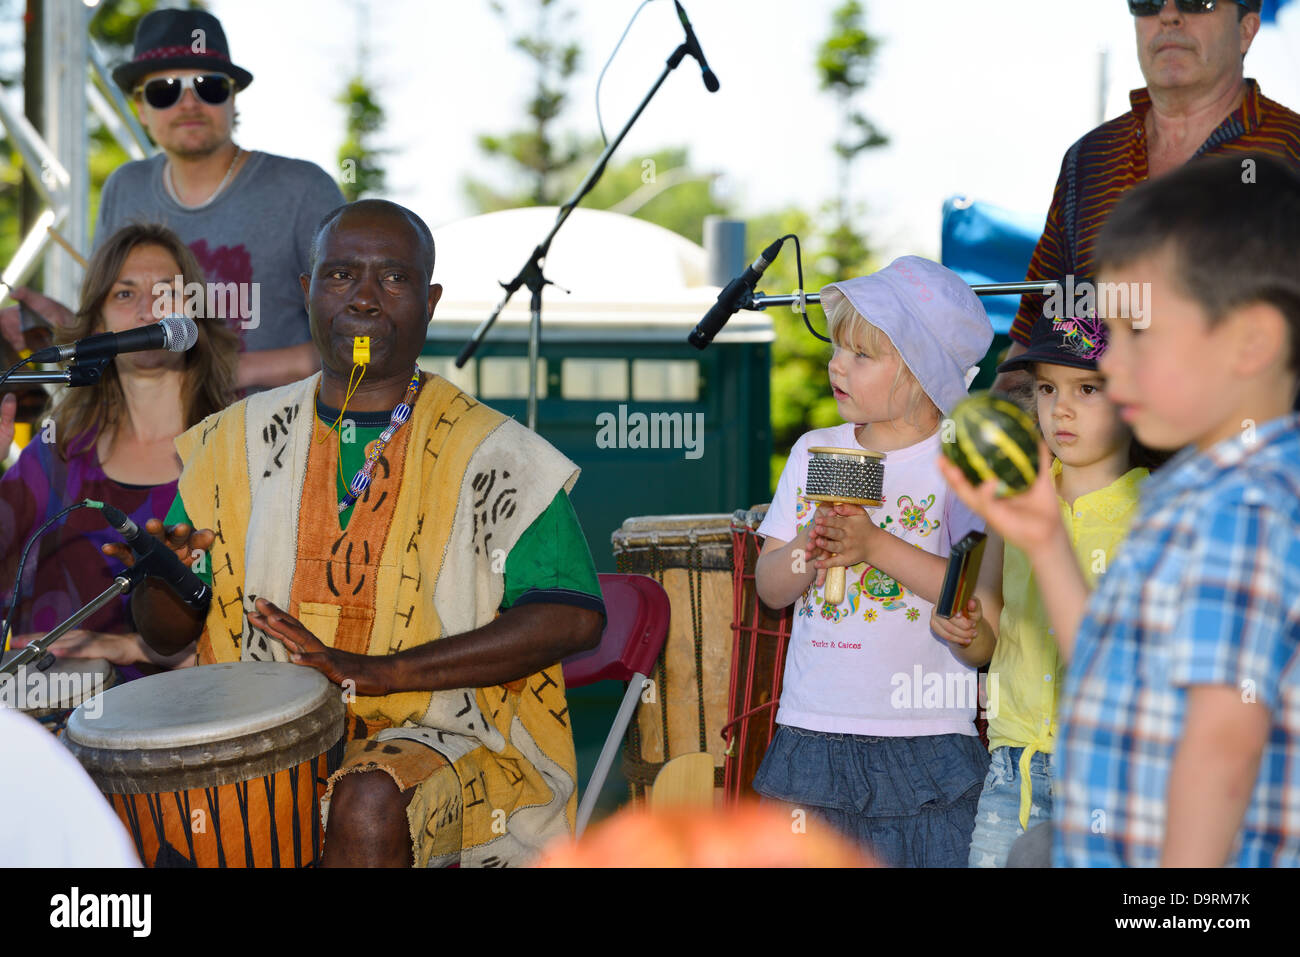 Njacko Backo African djembe drummer performing on stage with children at the Muhtadi Drum Festival Toronto - Stock Image